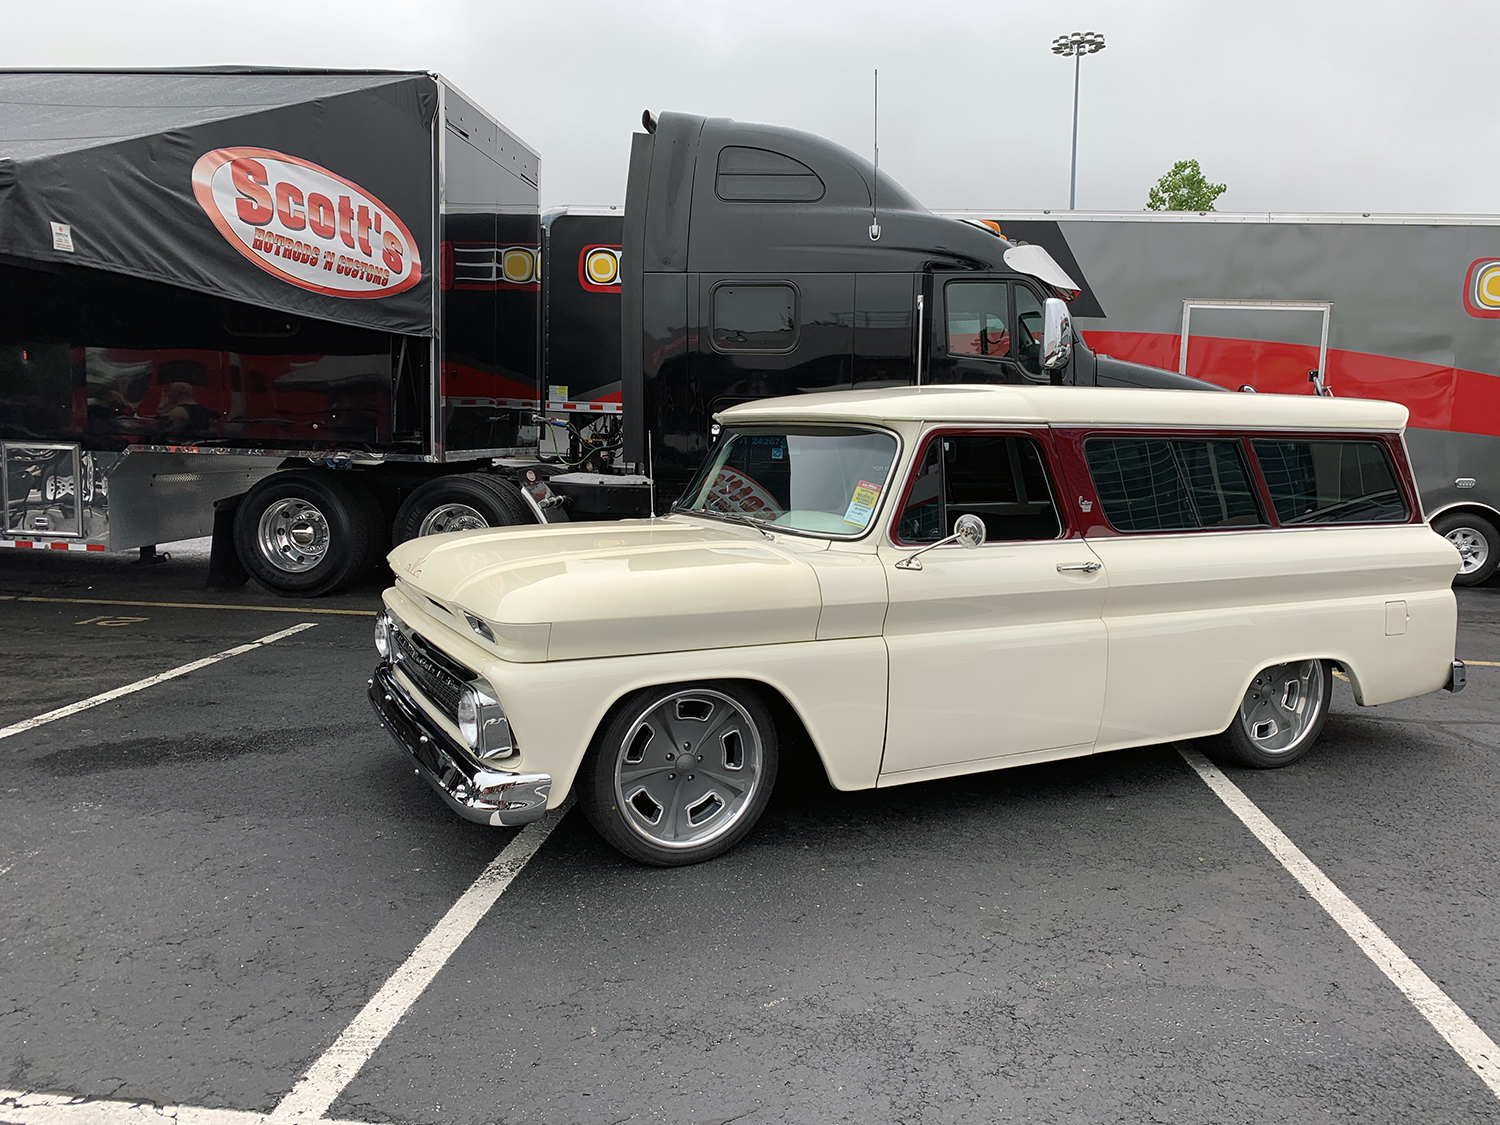 scotts-hotrods-good-guys-nashville-2019-16